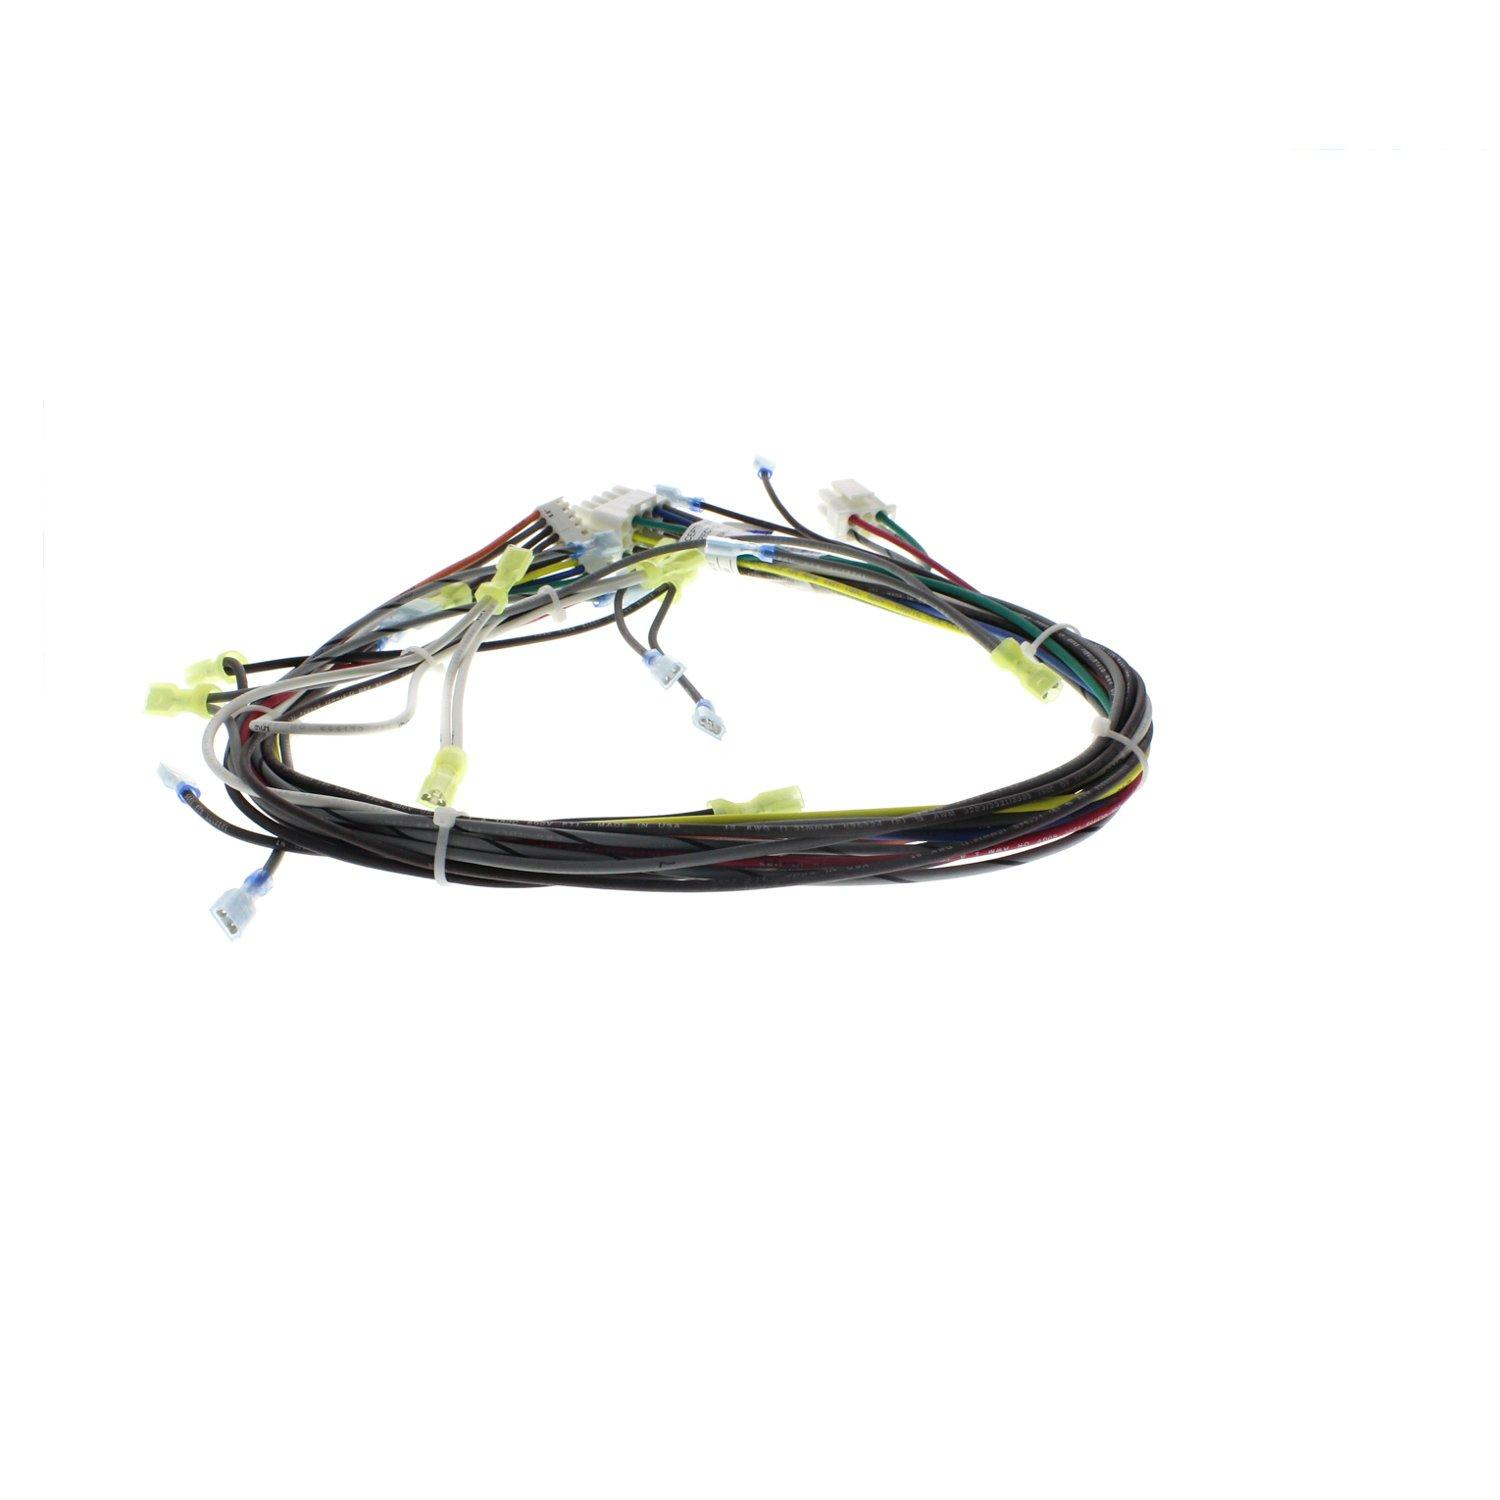 Southbend Control Wire Harness